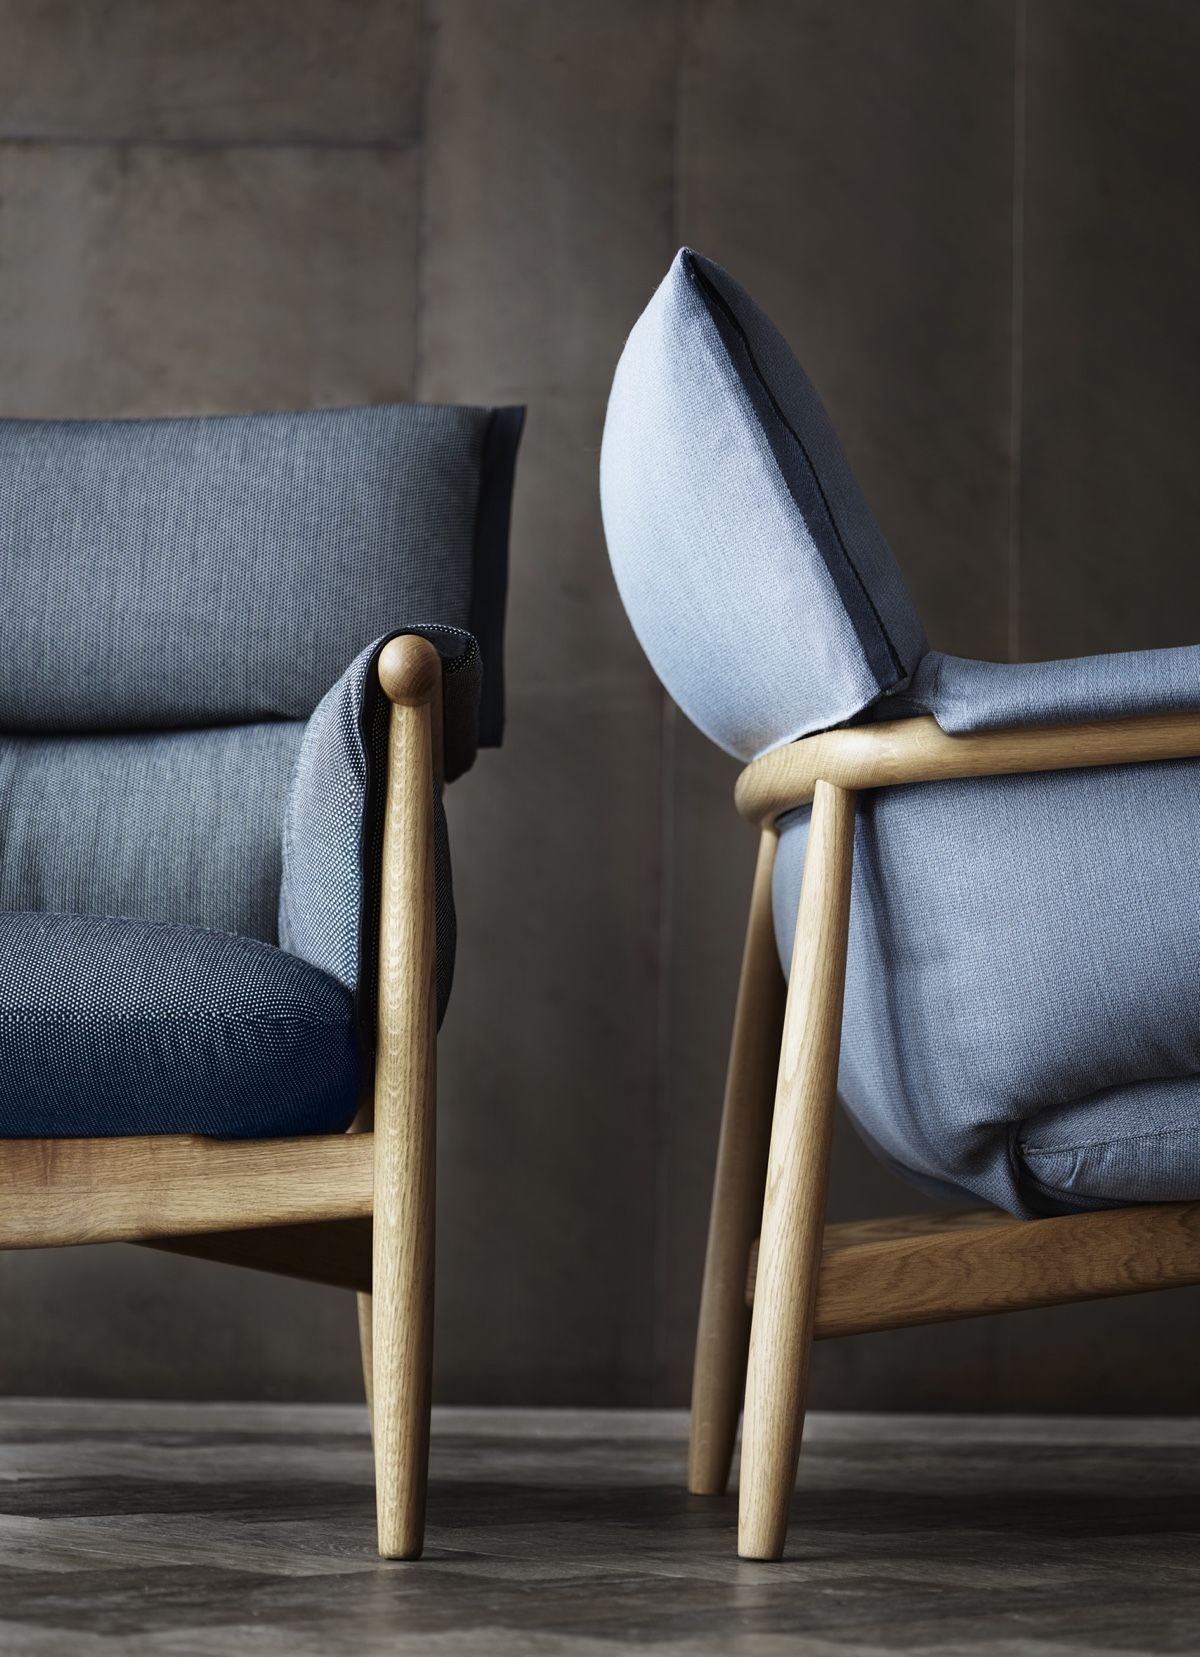 Nordic Design Furniture 6 Nordic Designs That Personify Cosiness Lounge